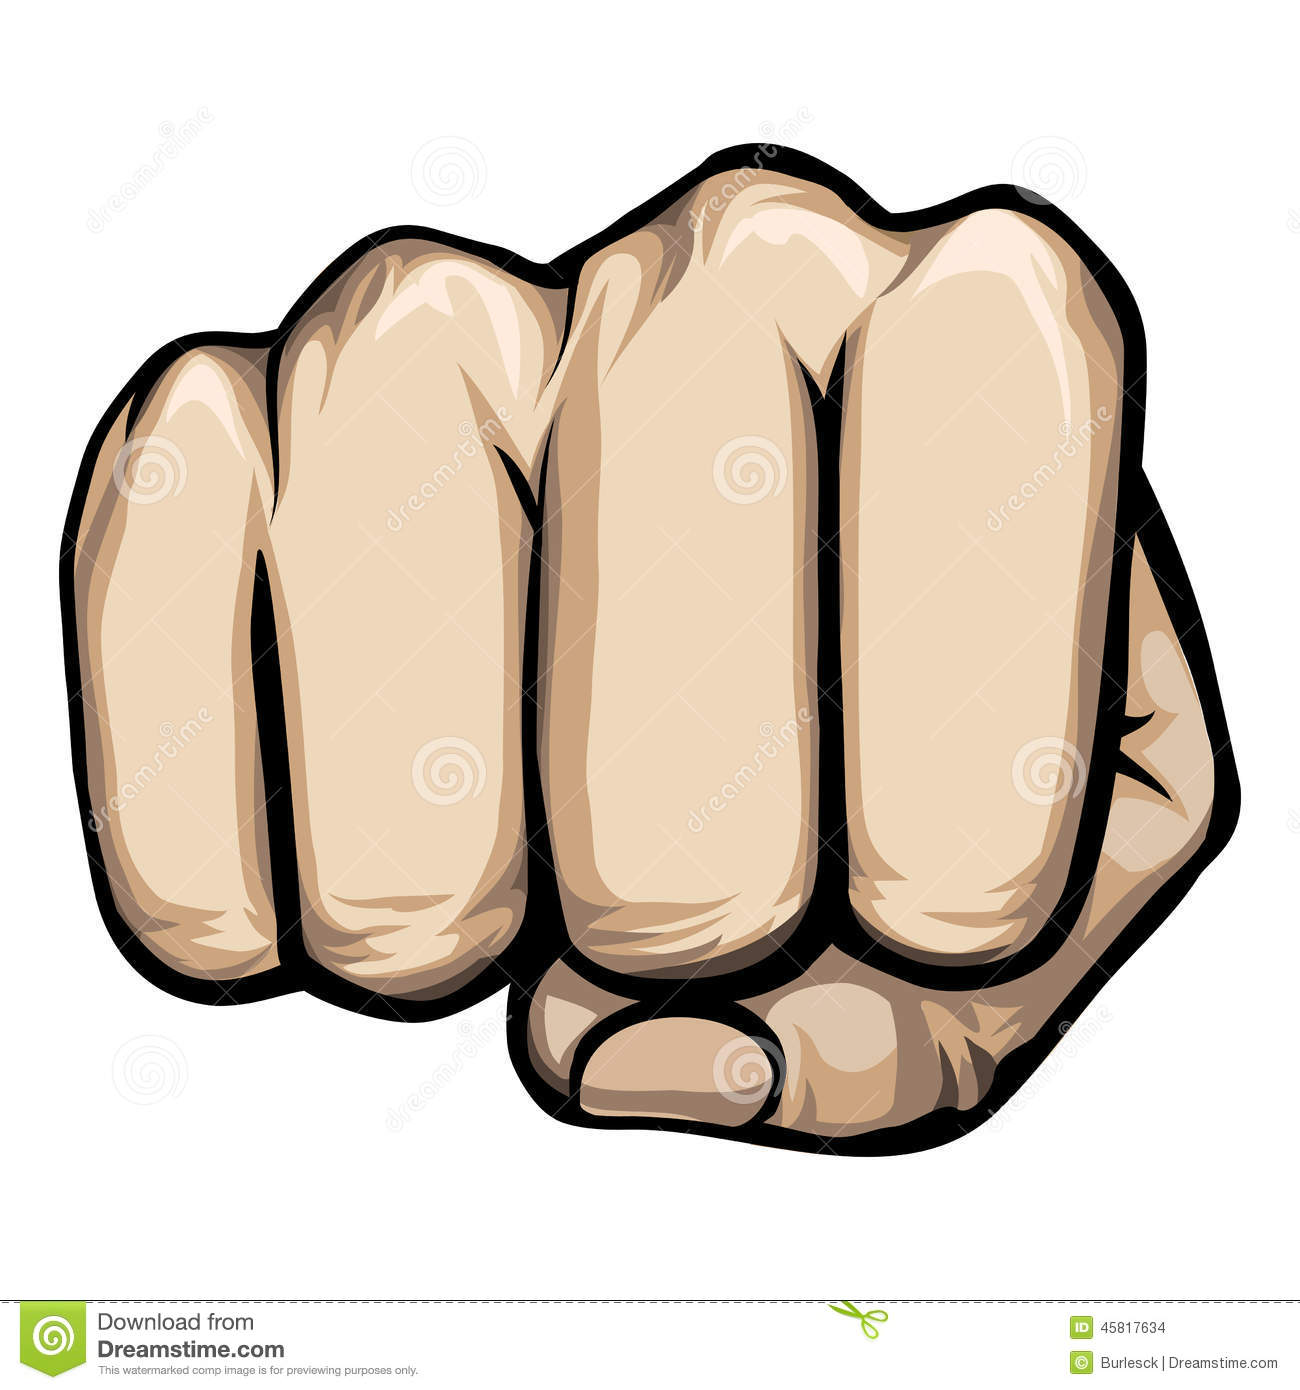 Fist clipart fist punch Punching Closed Fist Clipart